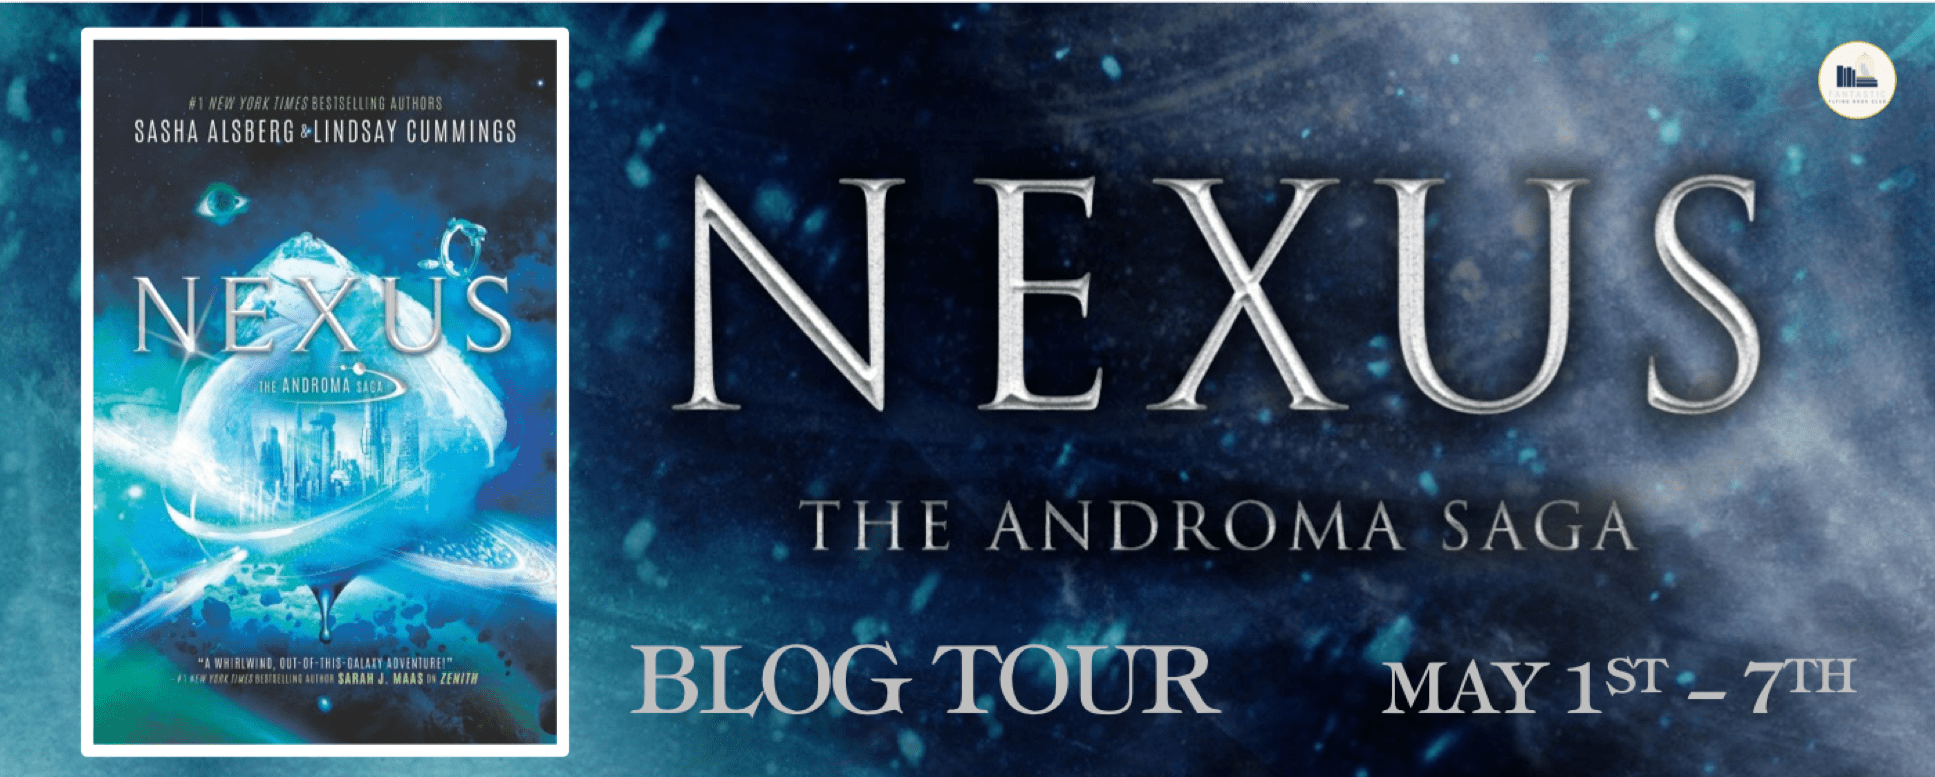 Blog Tour: Nexus by Sasha Alsberg + Lindsay Cummings (Interview + Giveaway!)